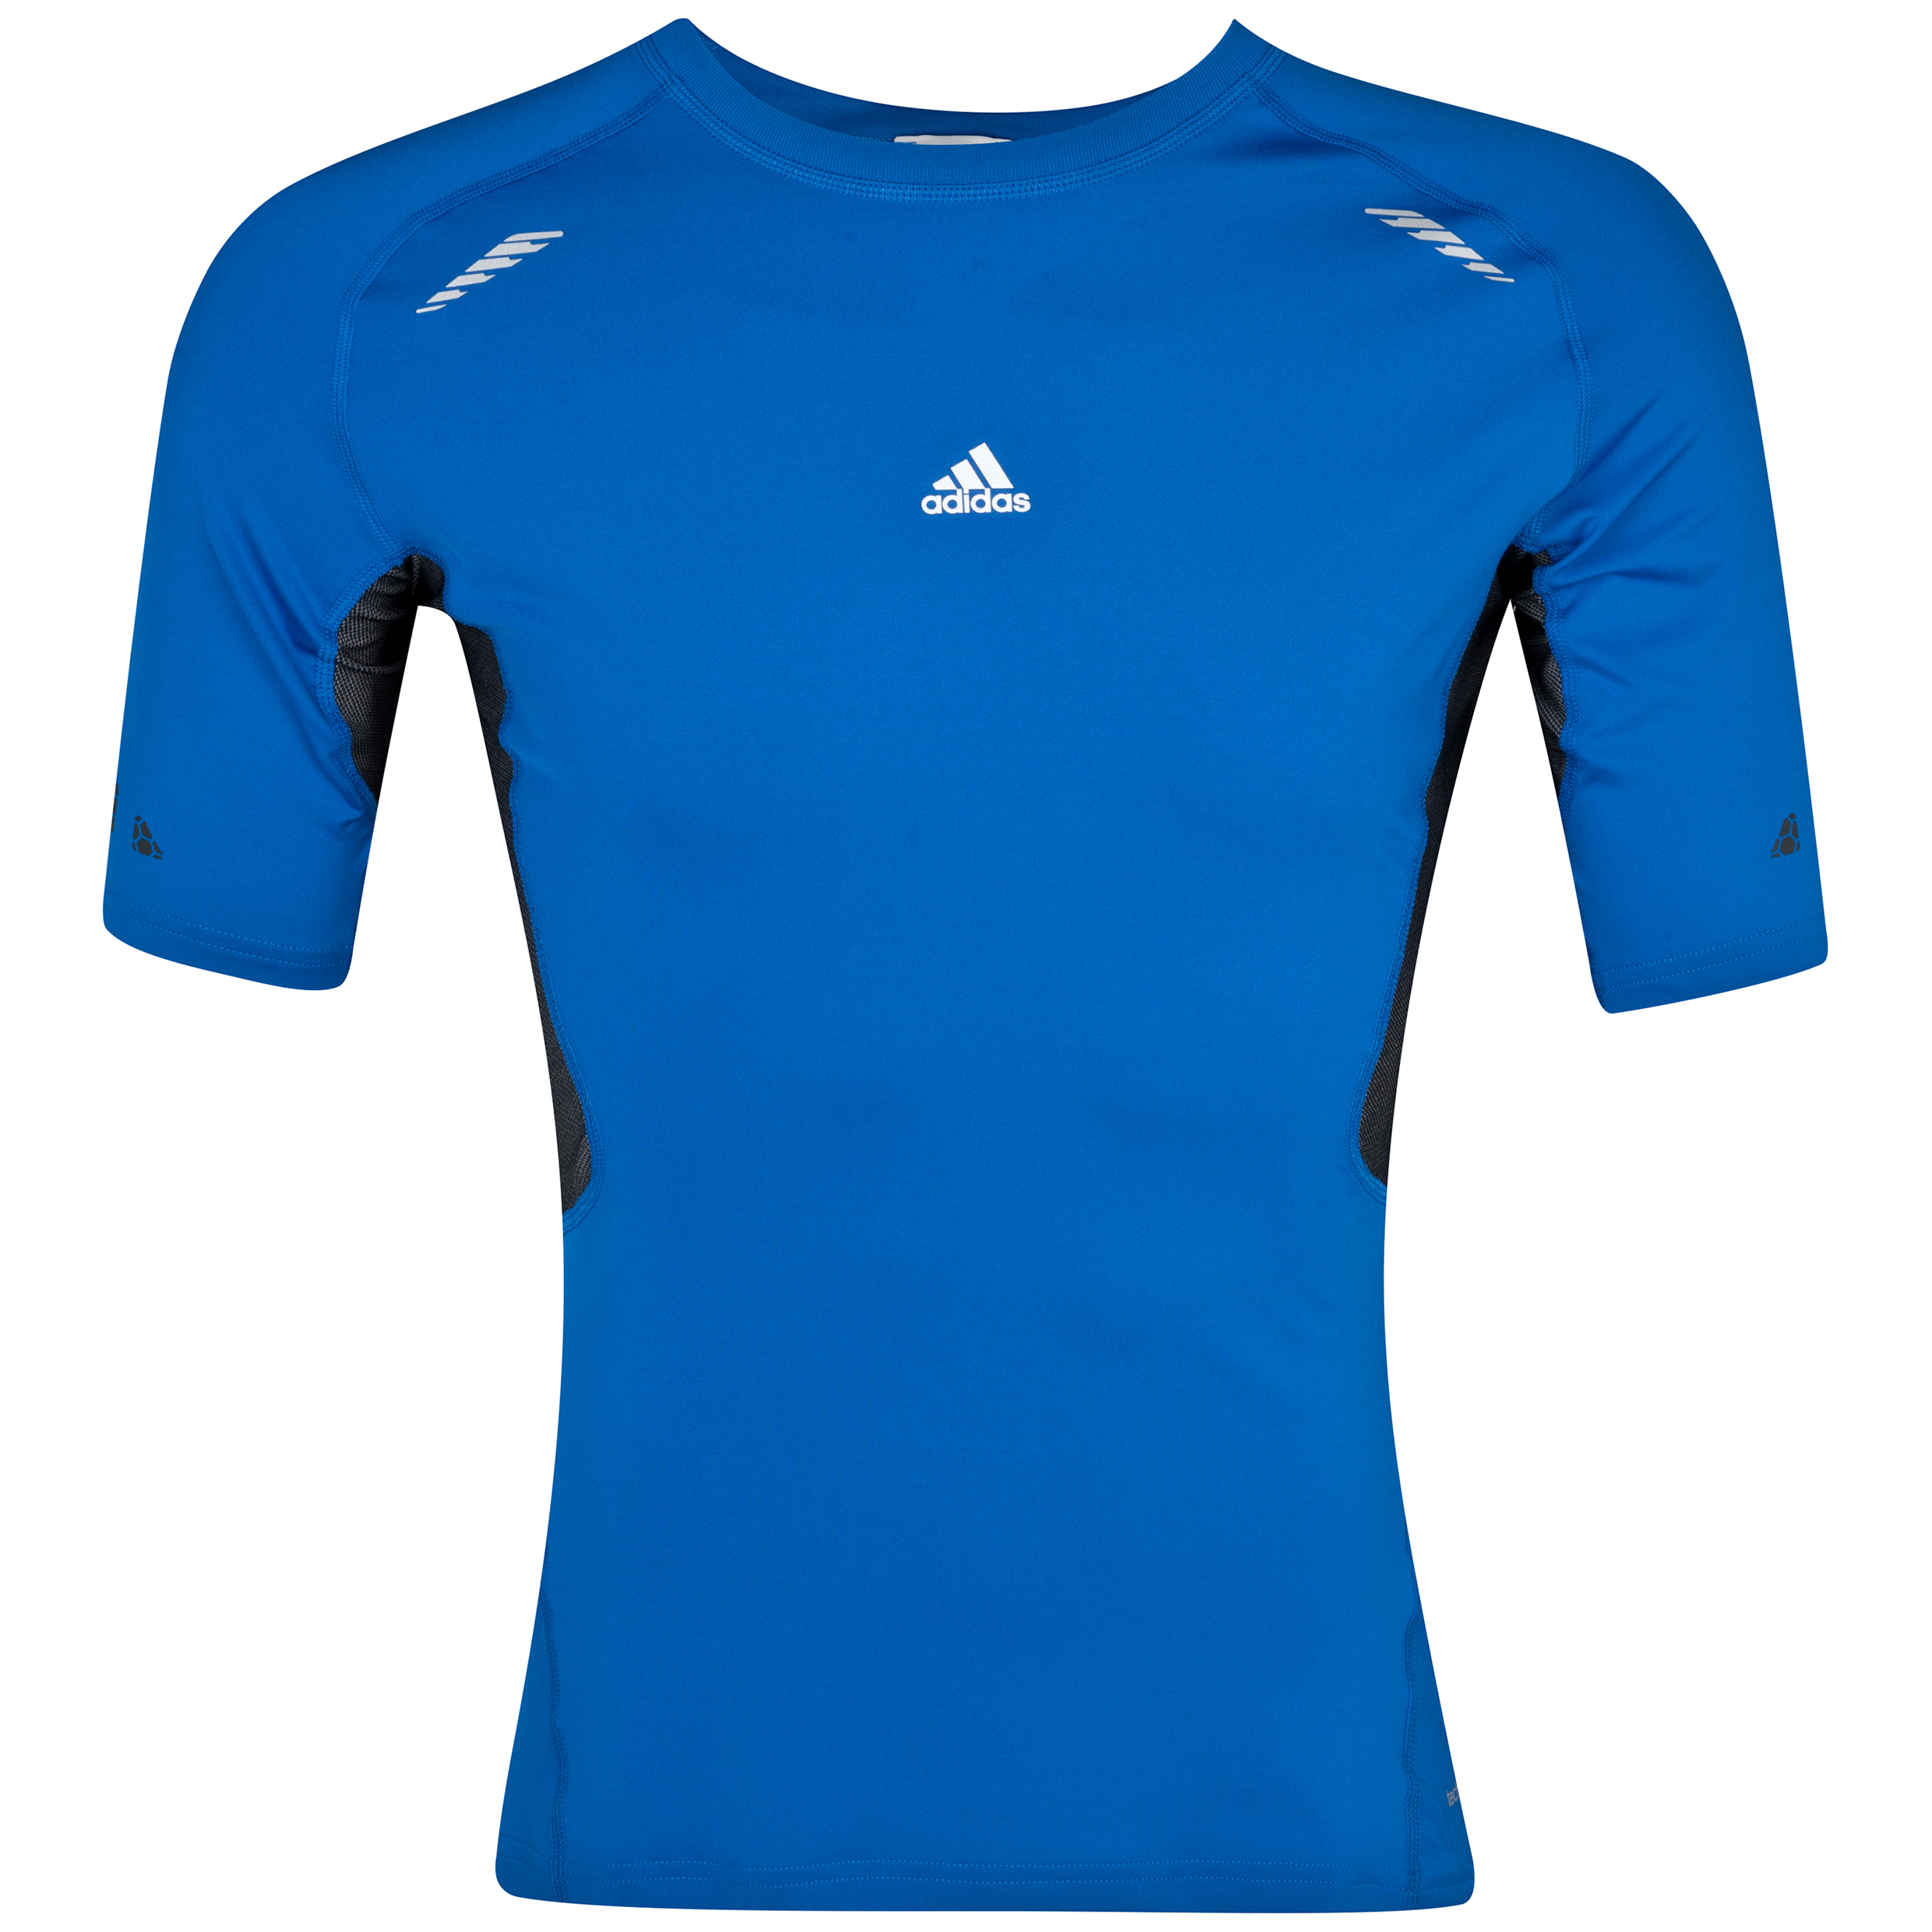 Adidas TechFit Preperation Baselayer Top Blue